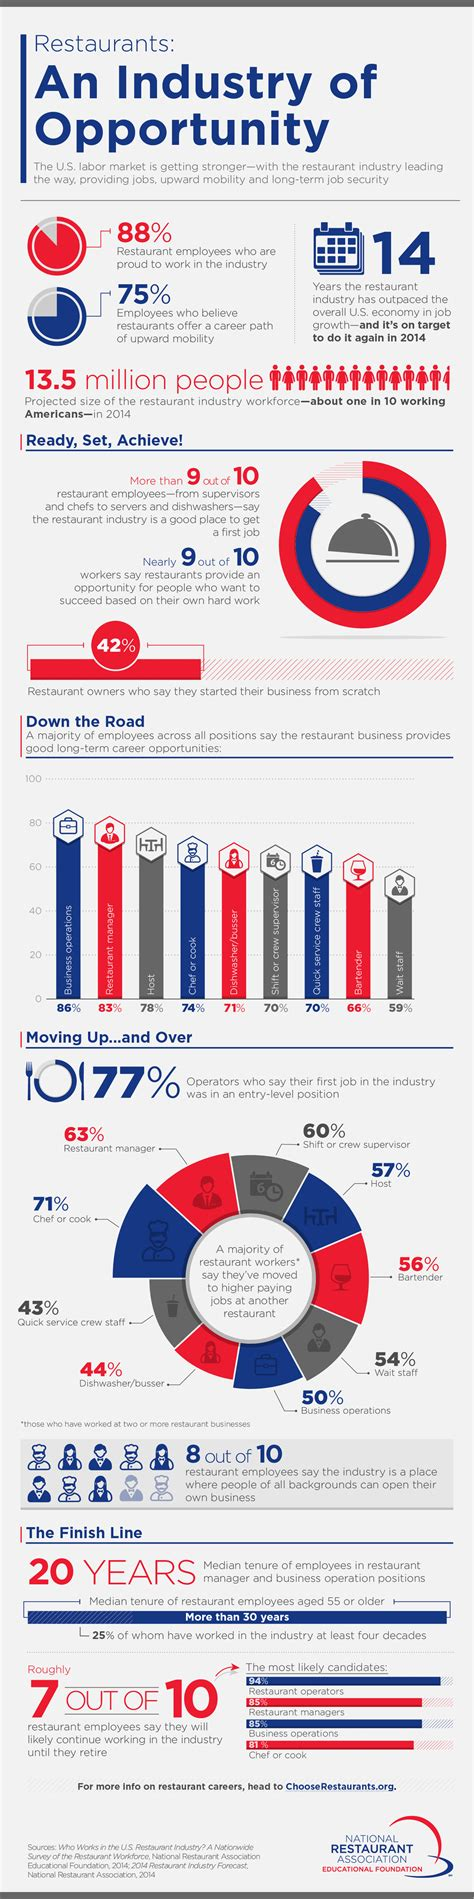 Bussines Opportunity On Palm Industry restaurants an industry of opportunity infographic buzztime